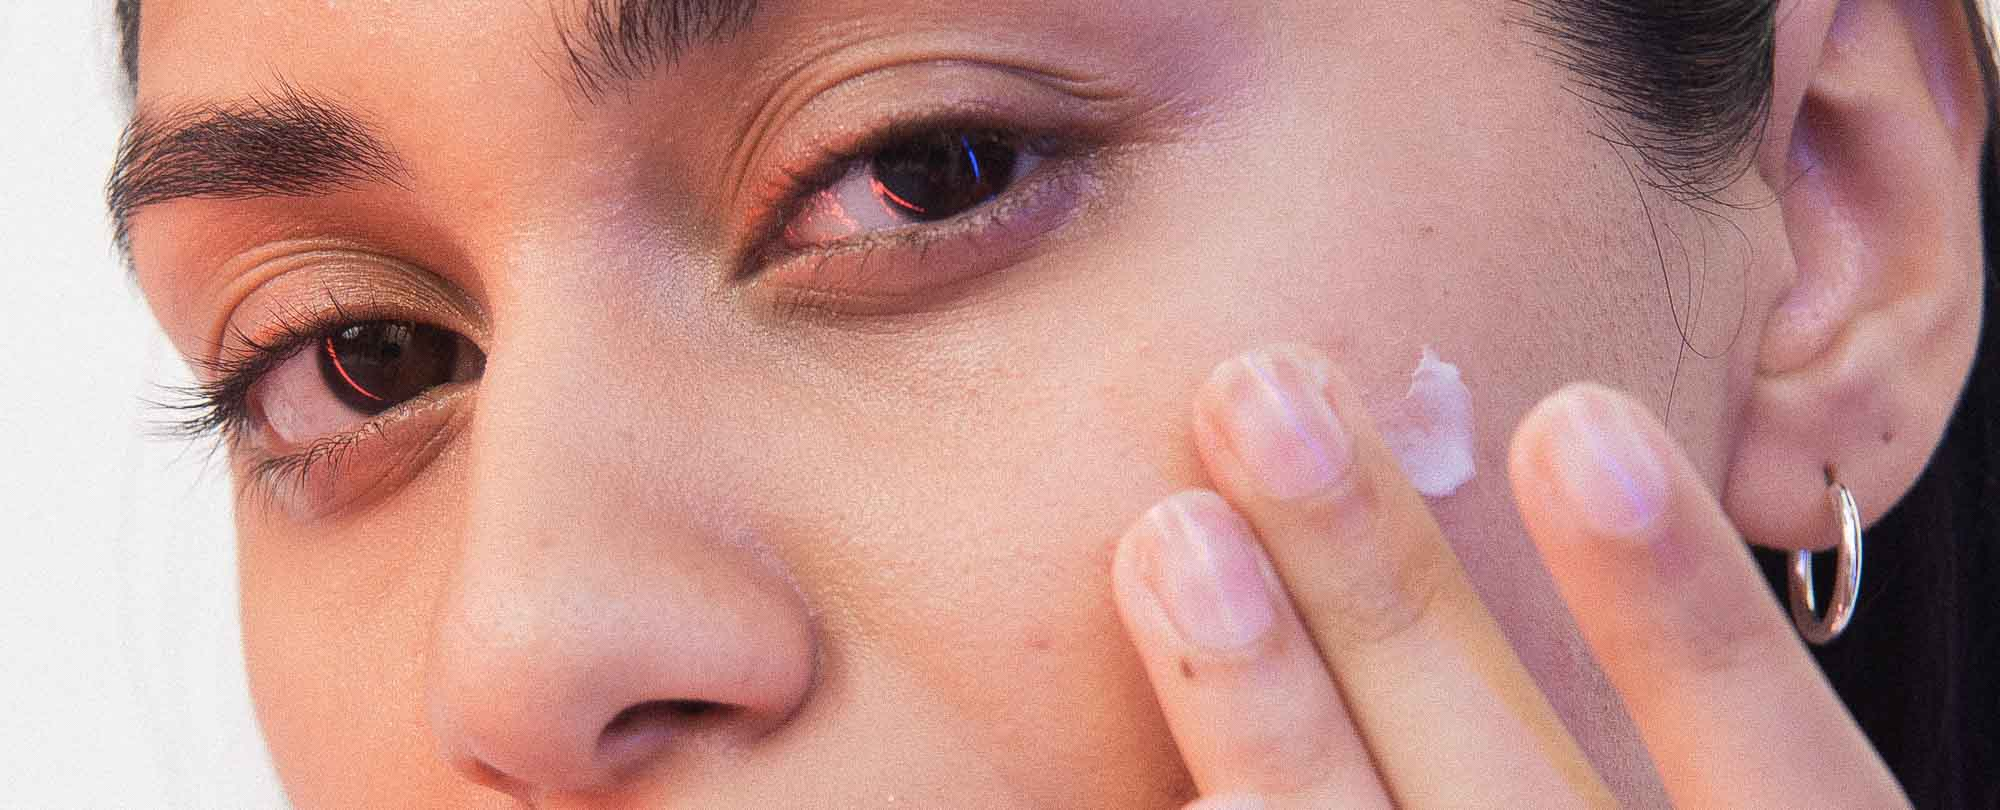 Blackheads vs. Whiteheads: What's the Difference?